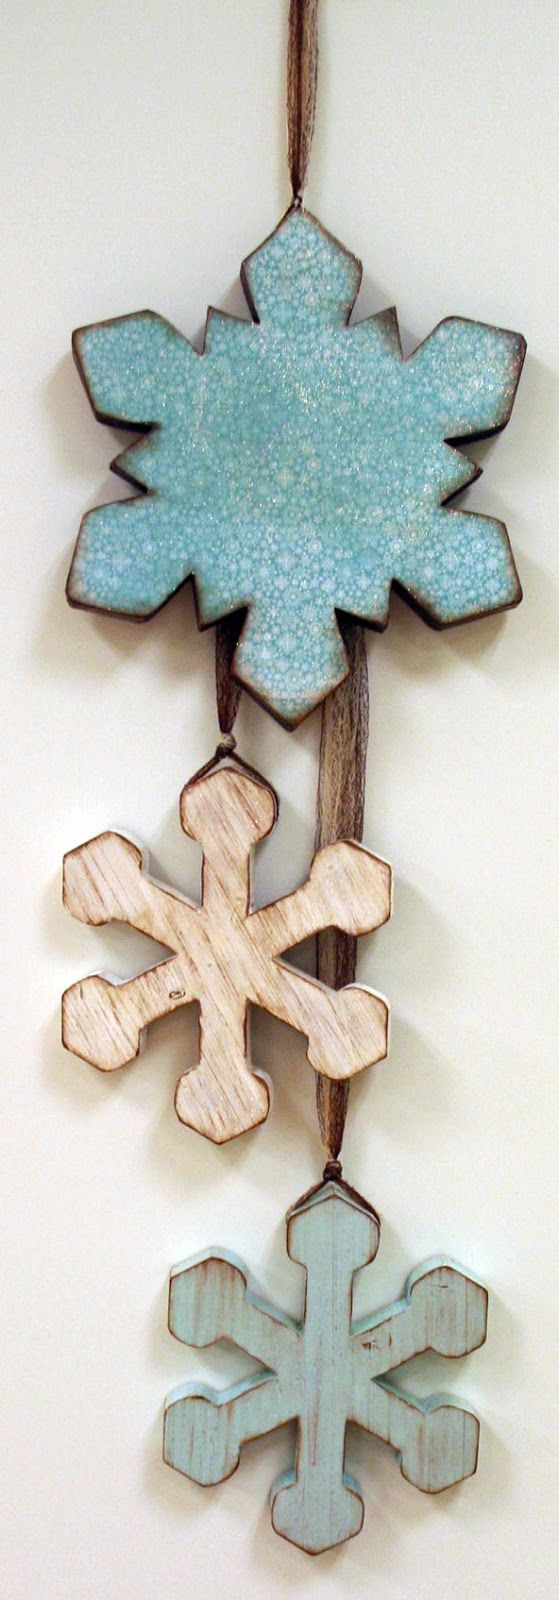 Oh My Crafts Blog: Snowflakes Wood Decor